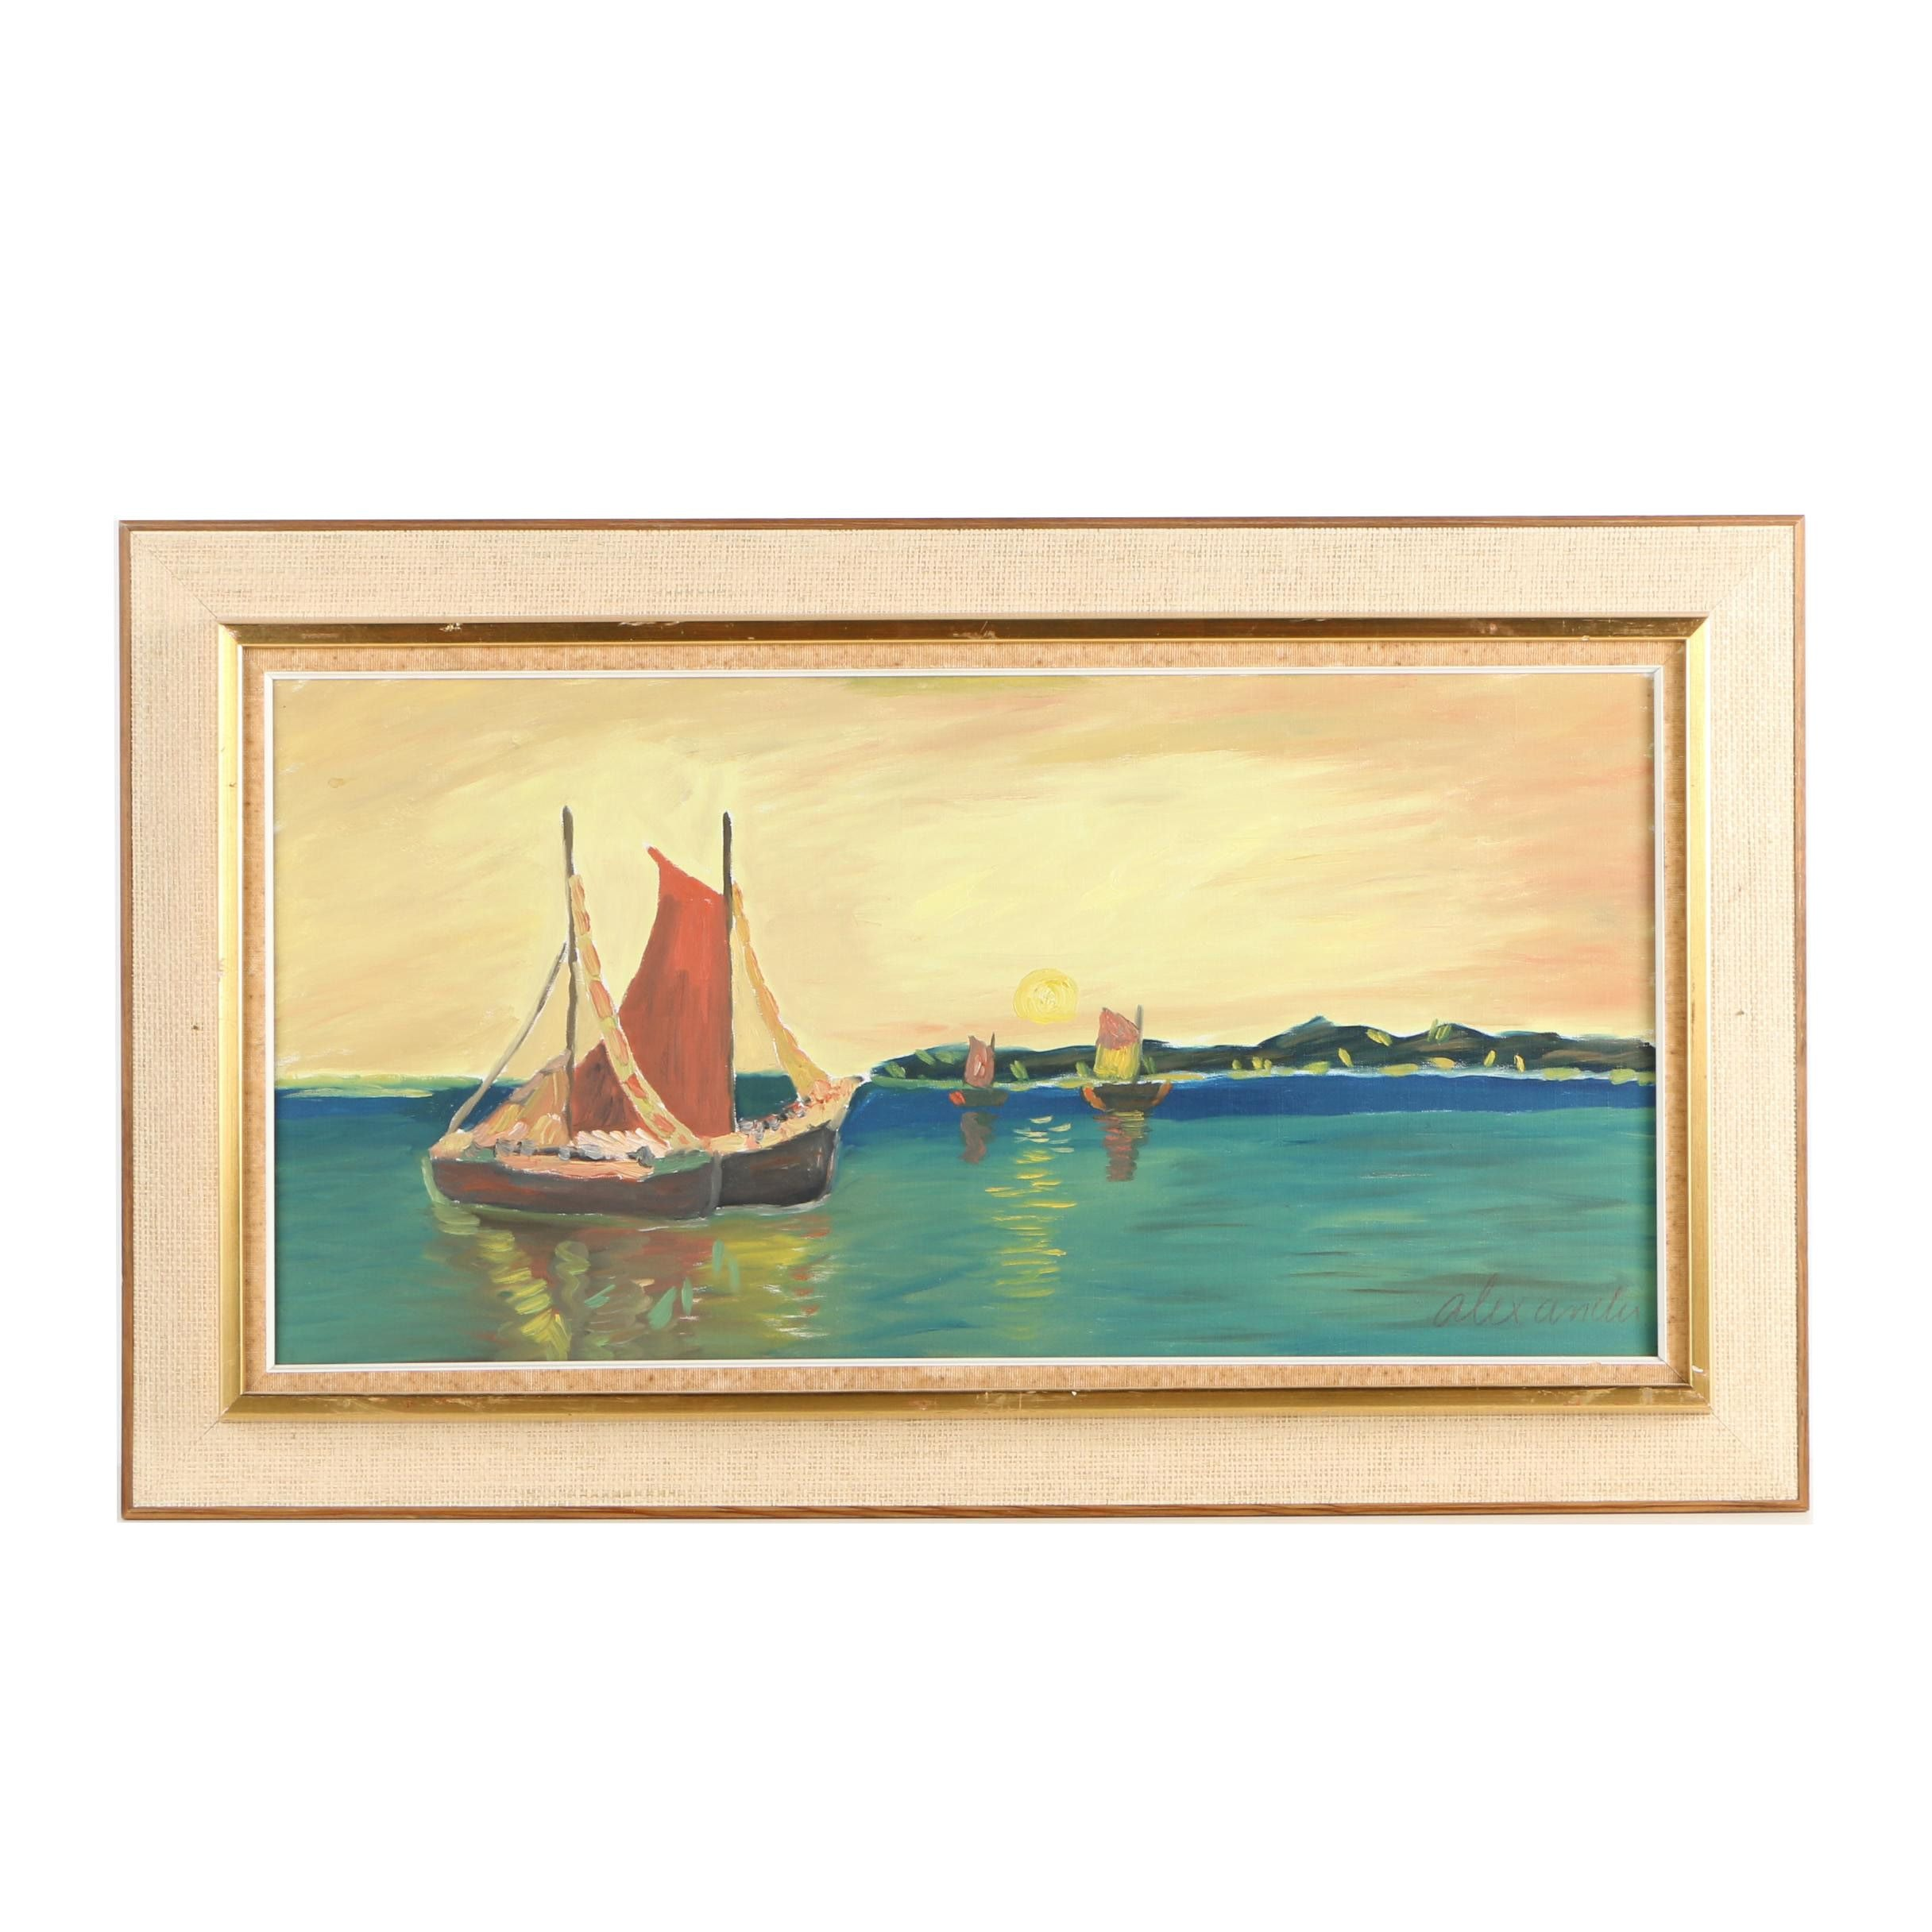 Alexander-Signed Nautical Oil Painting on Canvas